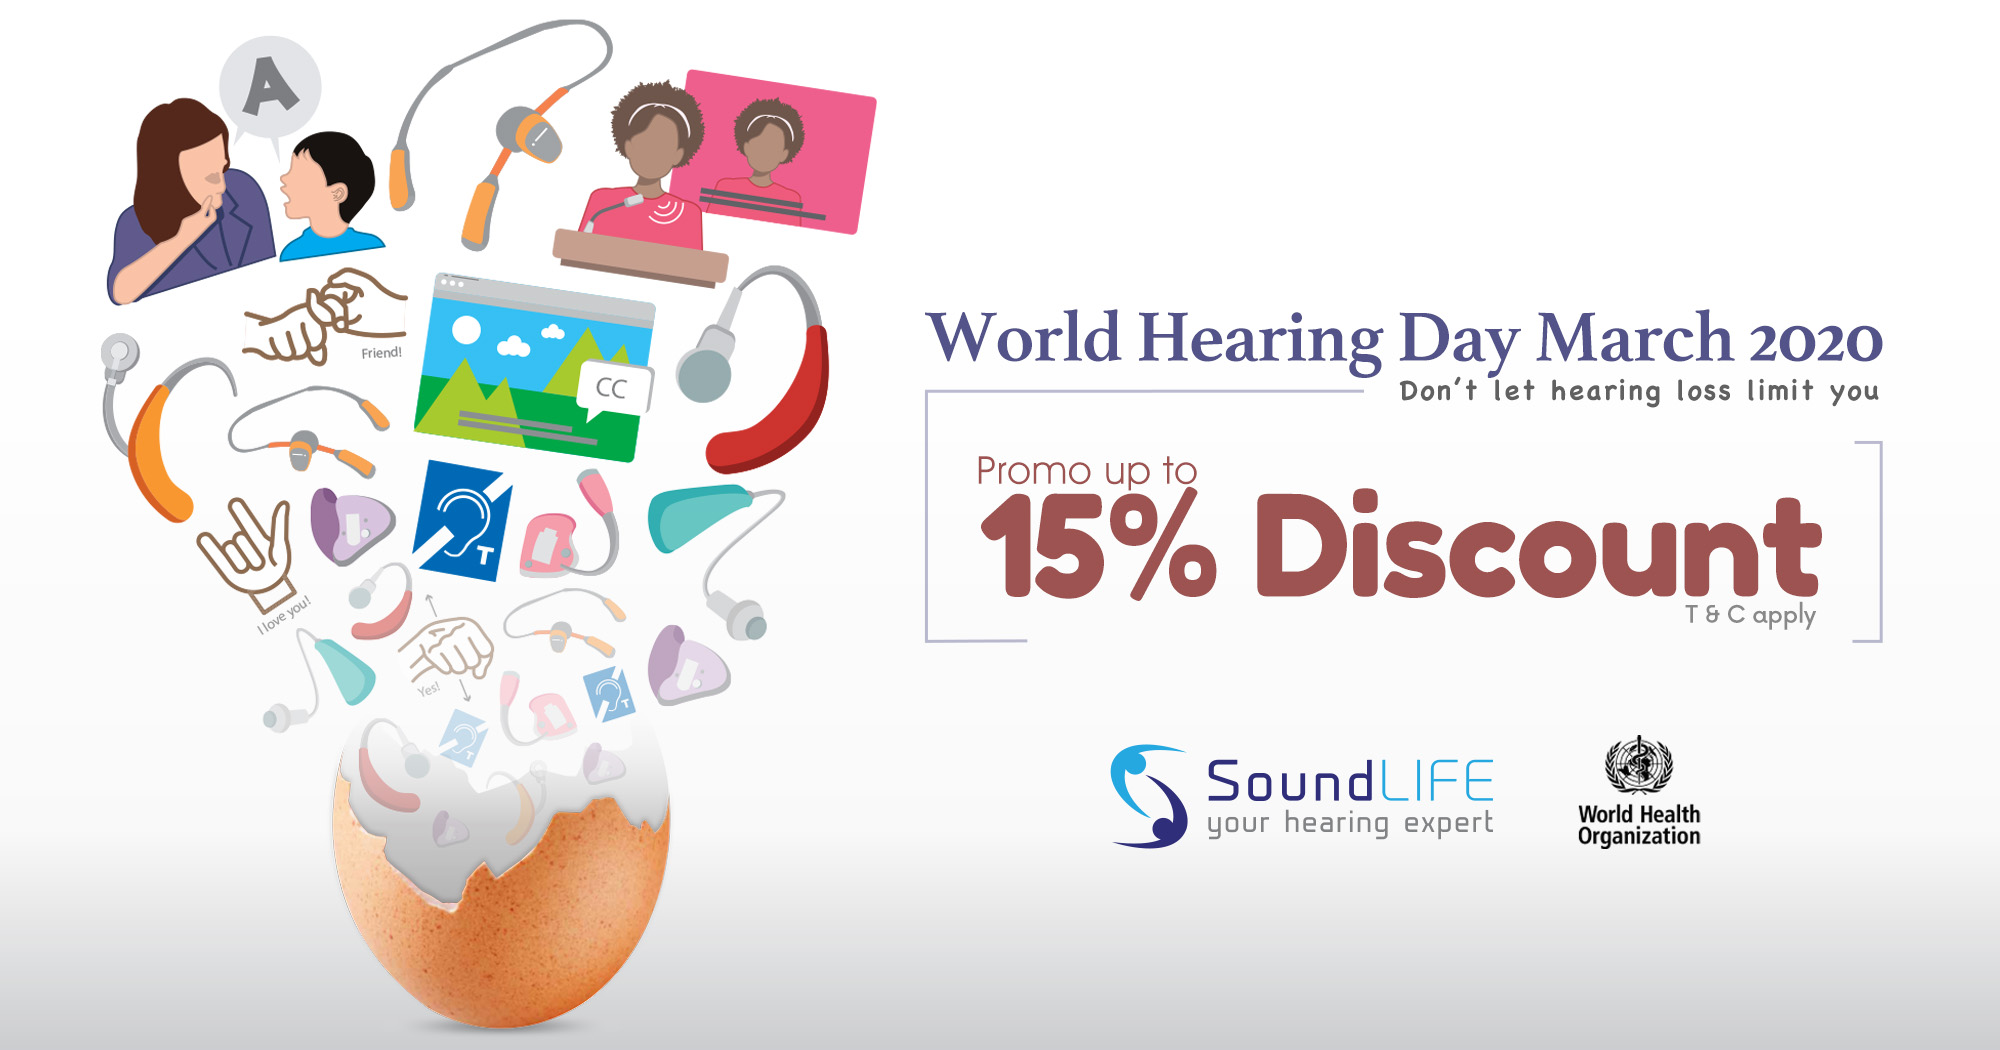 World Hearing Day Promo Up To 15% Discount.